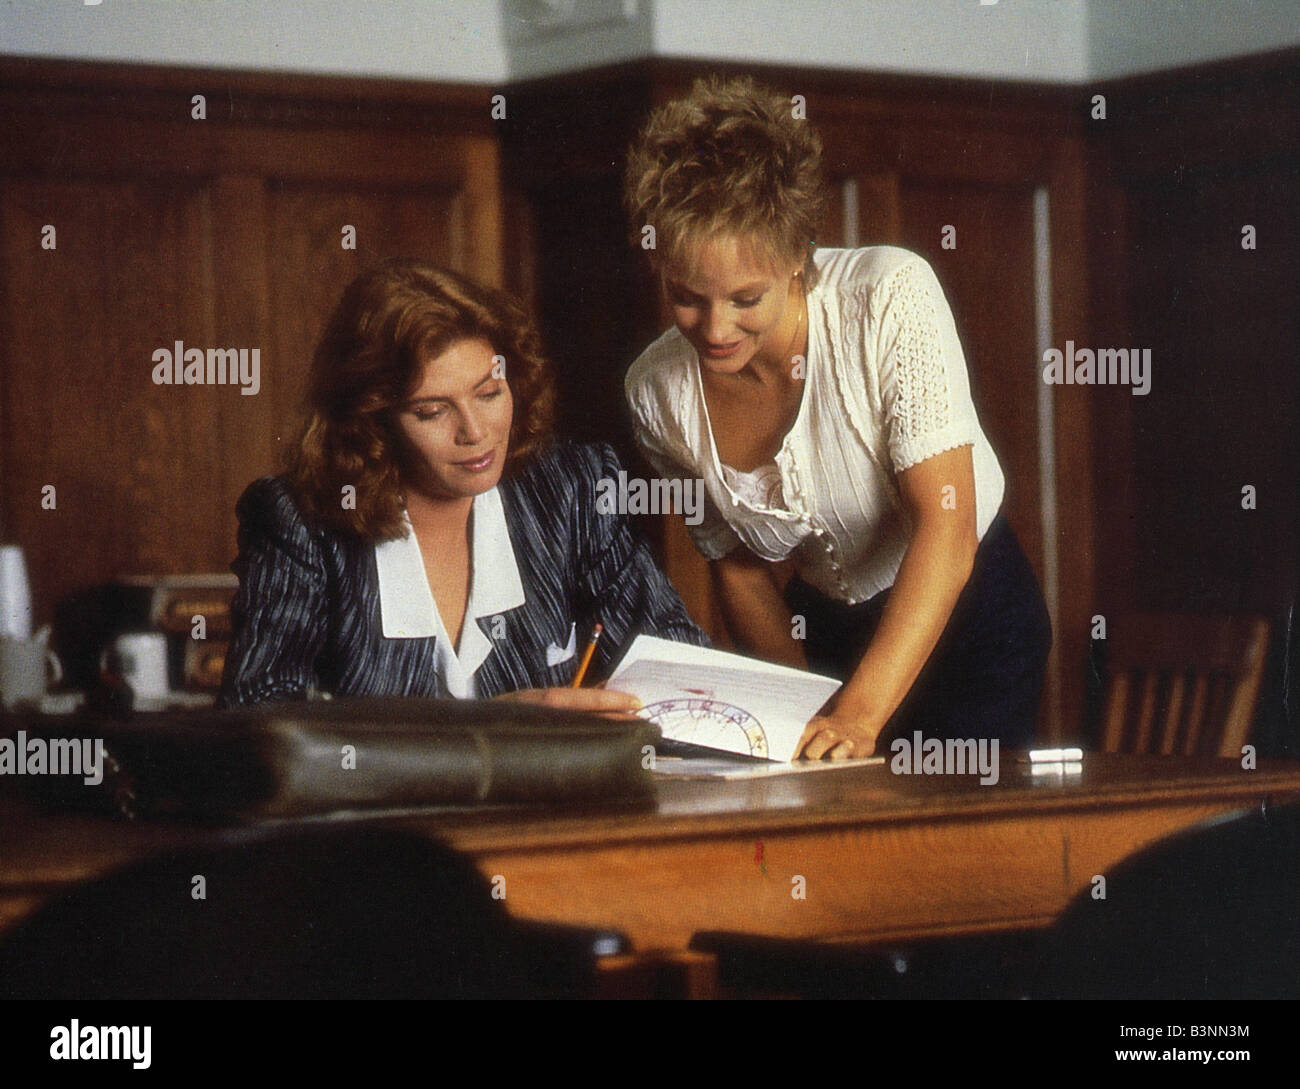 the accused 1988 uip paramount film kelly mcgillis at left stock photo the accused 1988 uip paramount film kelly mcgillis at left and jody foster